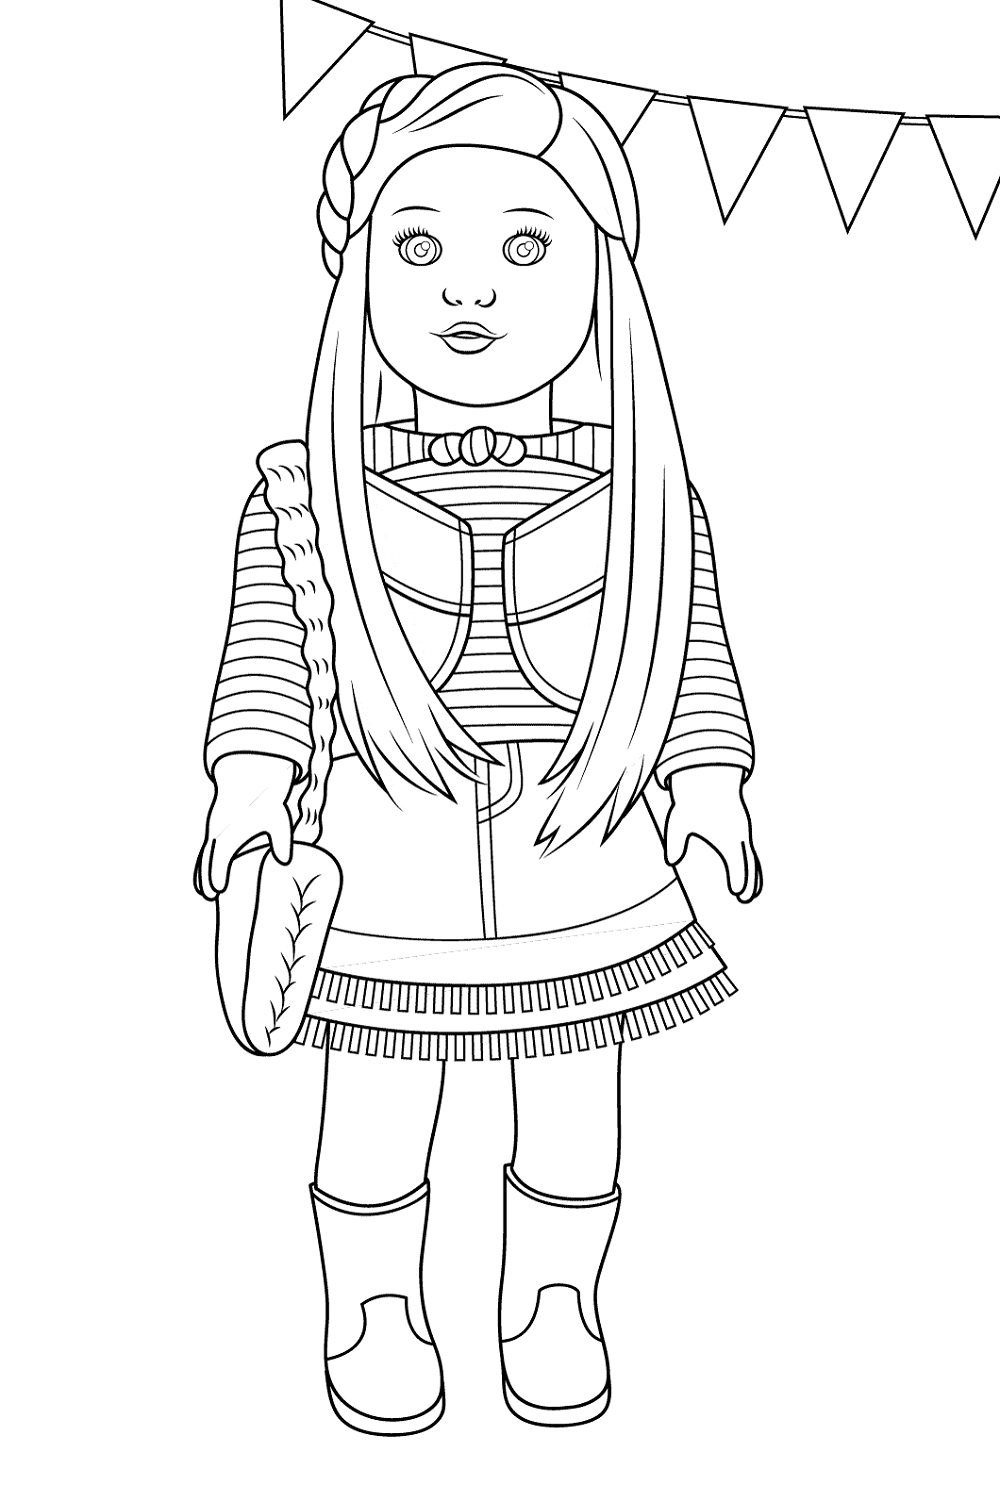 pictures of american girl dolls to color american girl doll coloring pages educative printable pictures girl dolls color american to of